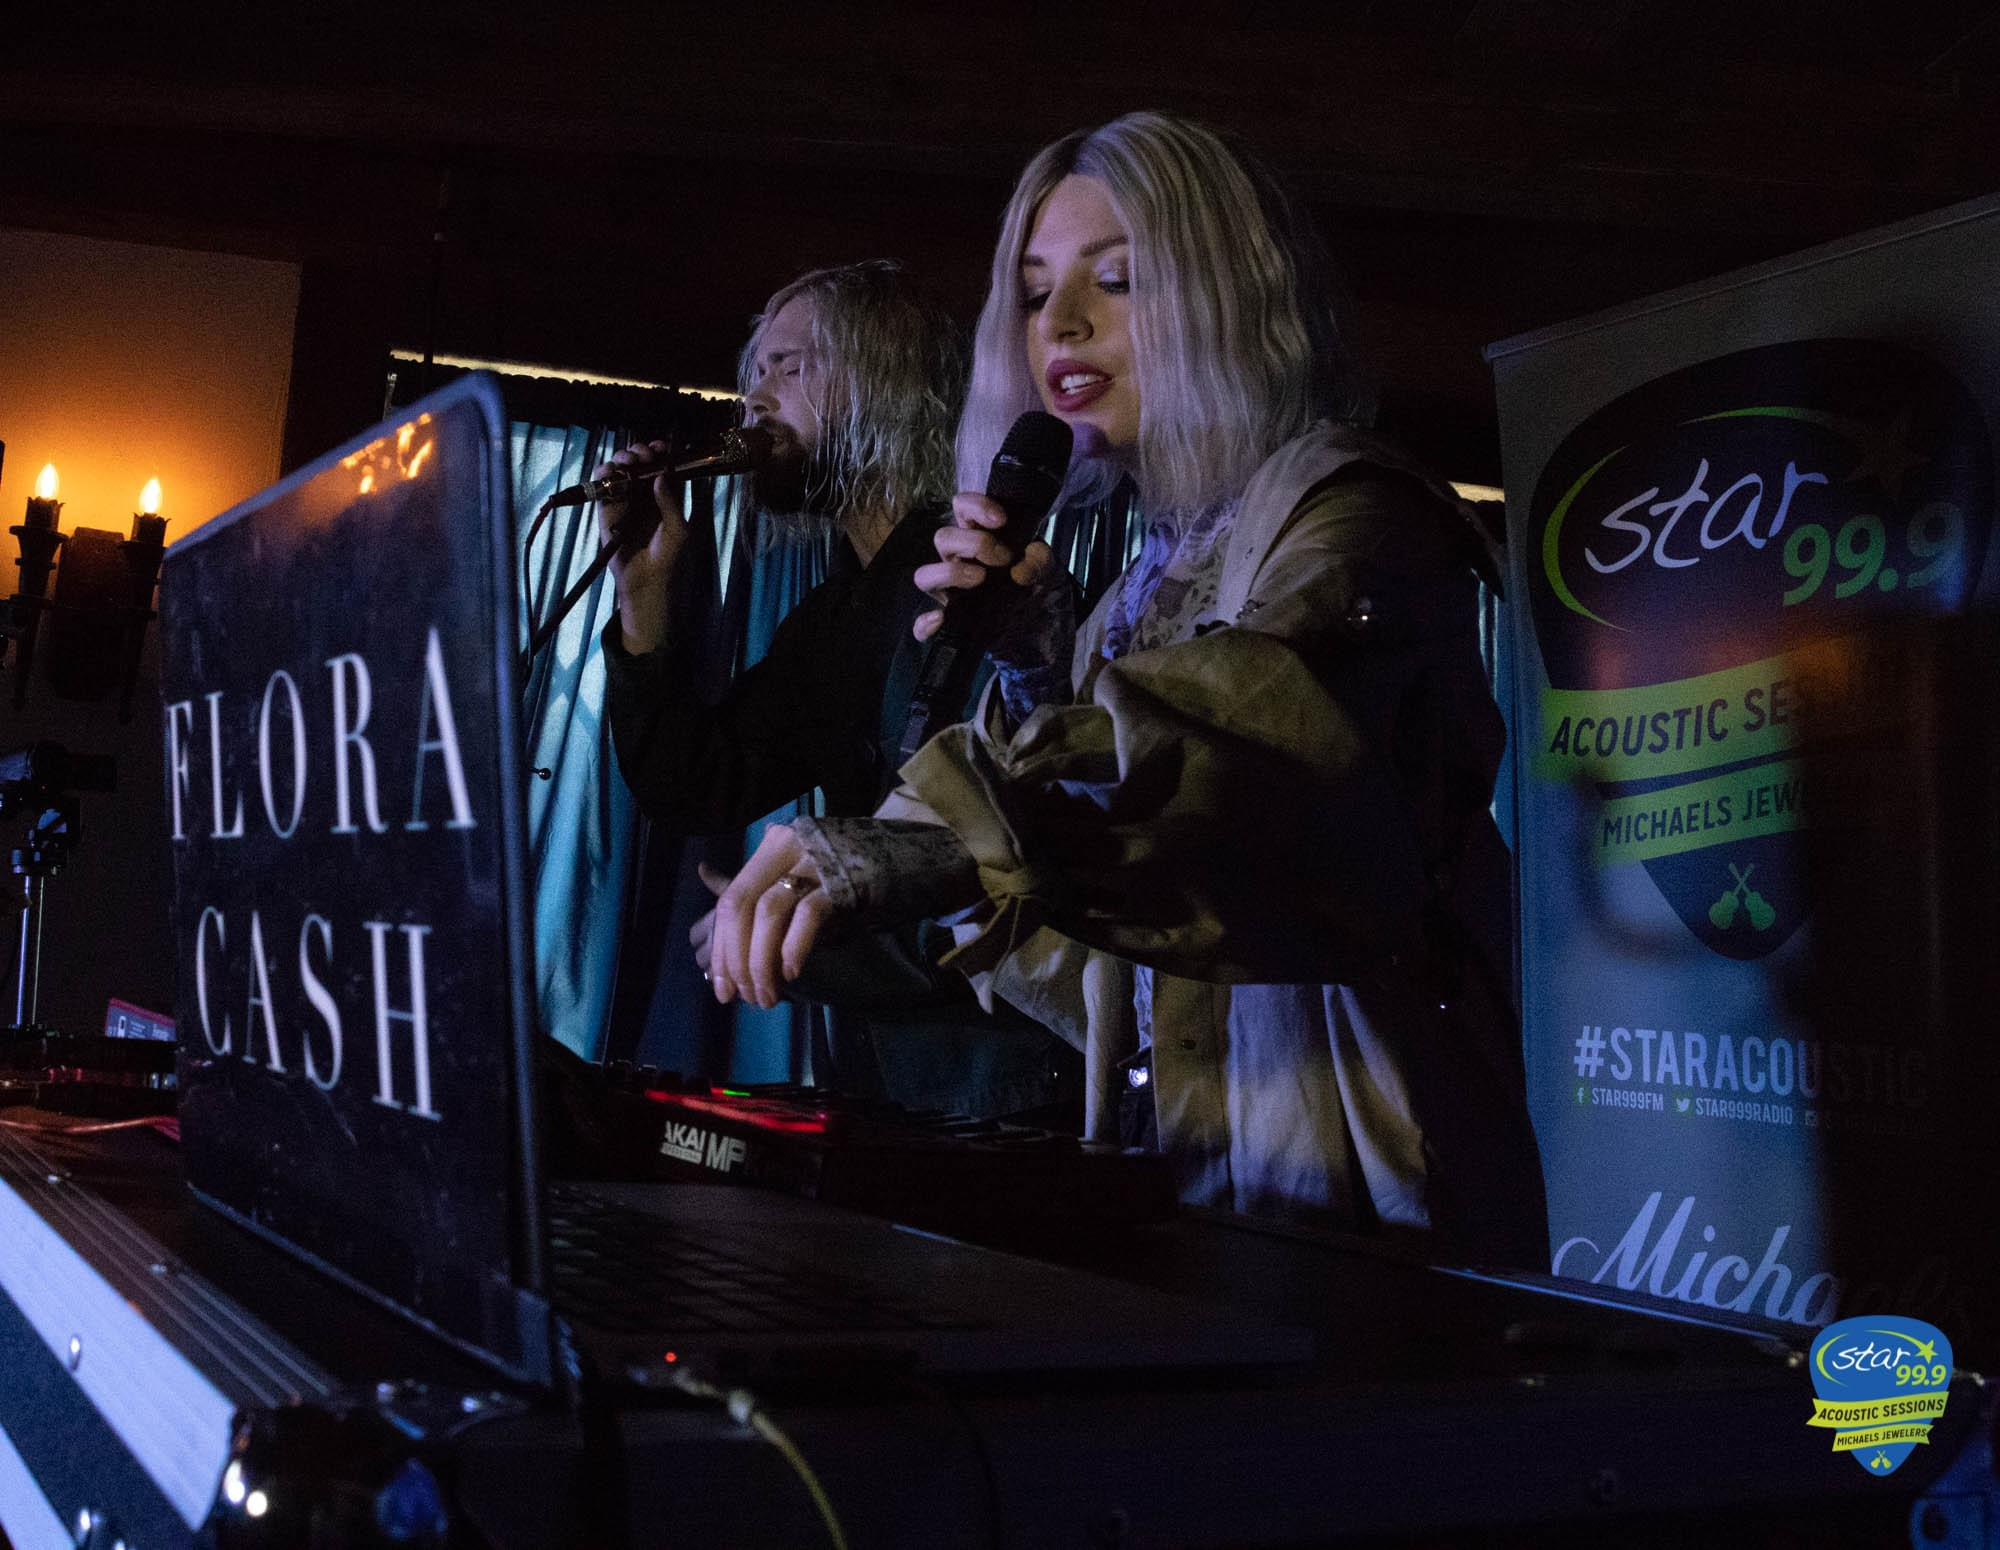 Star 99.9 Michaels Jewelers Acoustic Session with Flora Cash Pictures